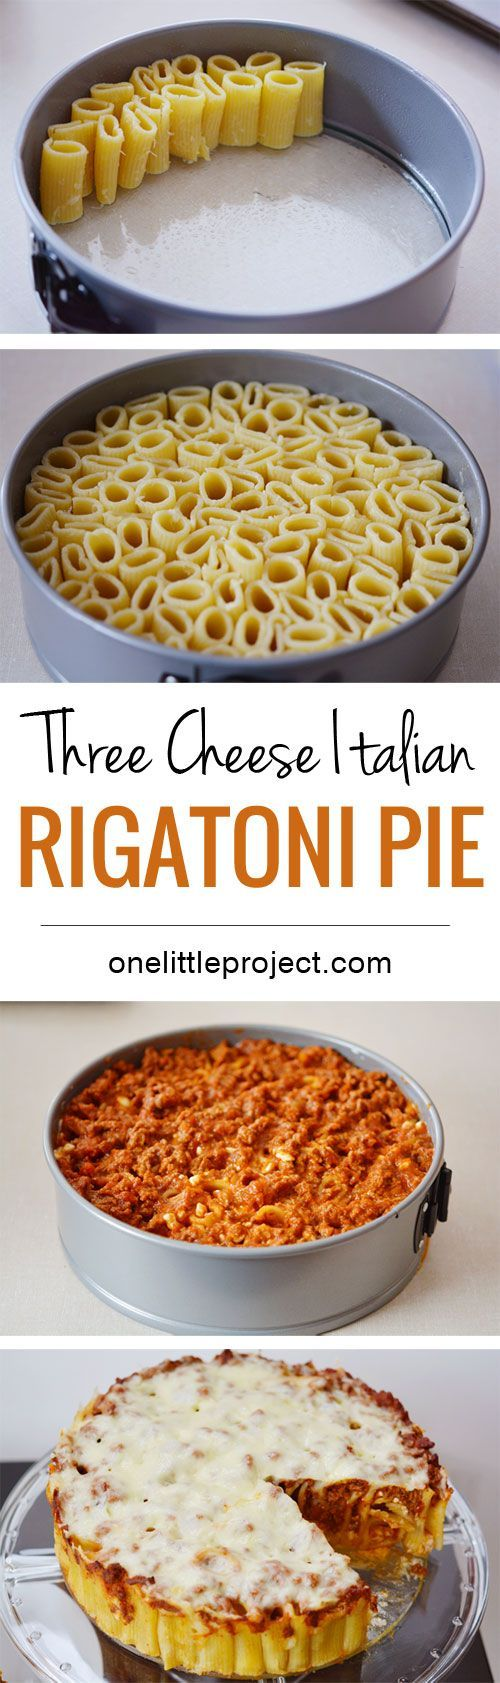 Three Cheese Italian Rigatoni Pie